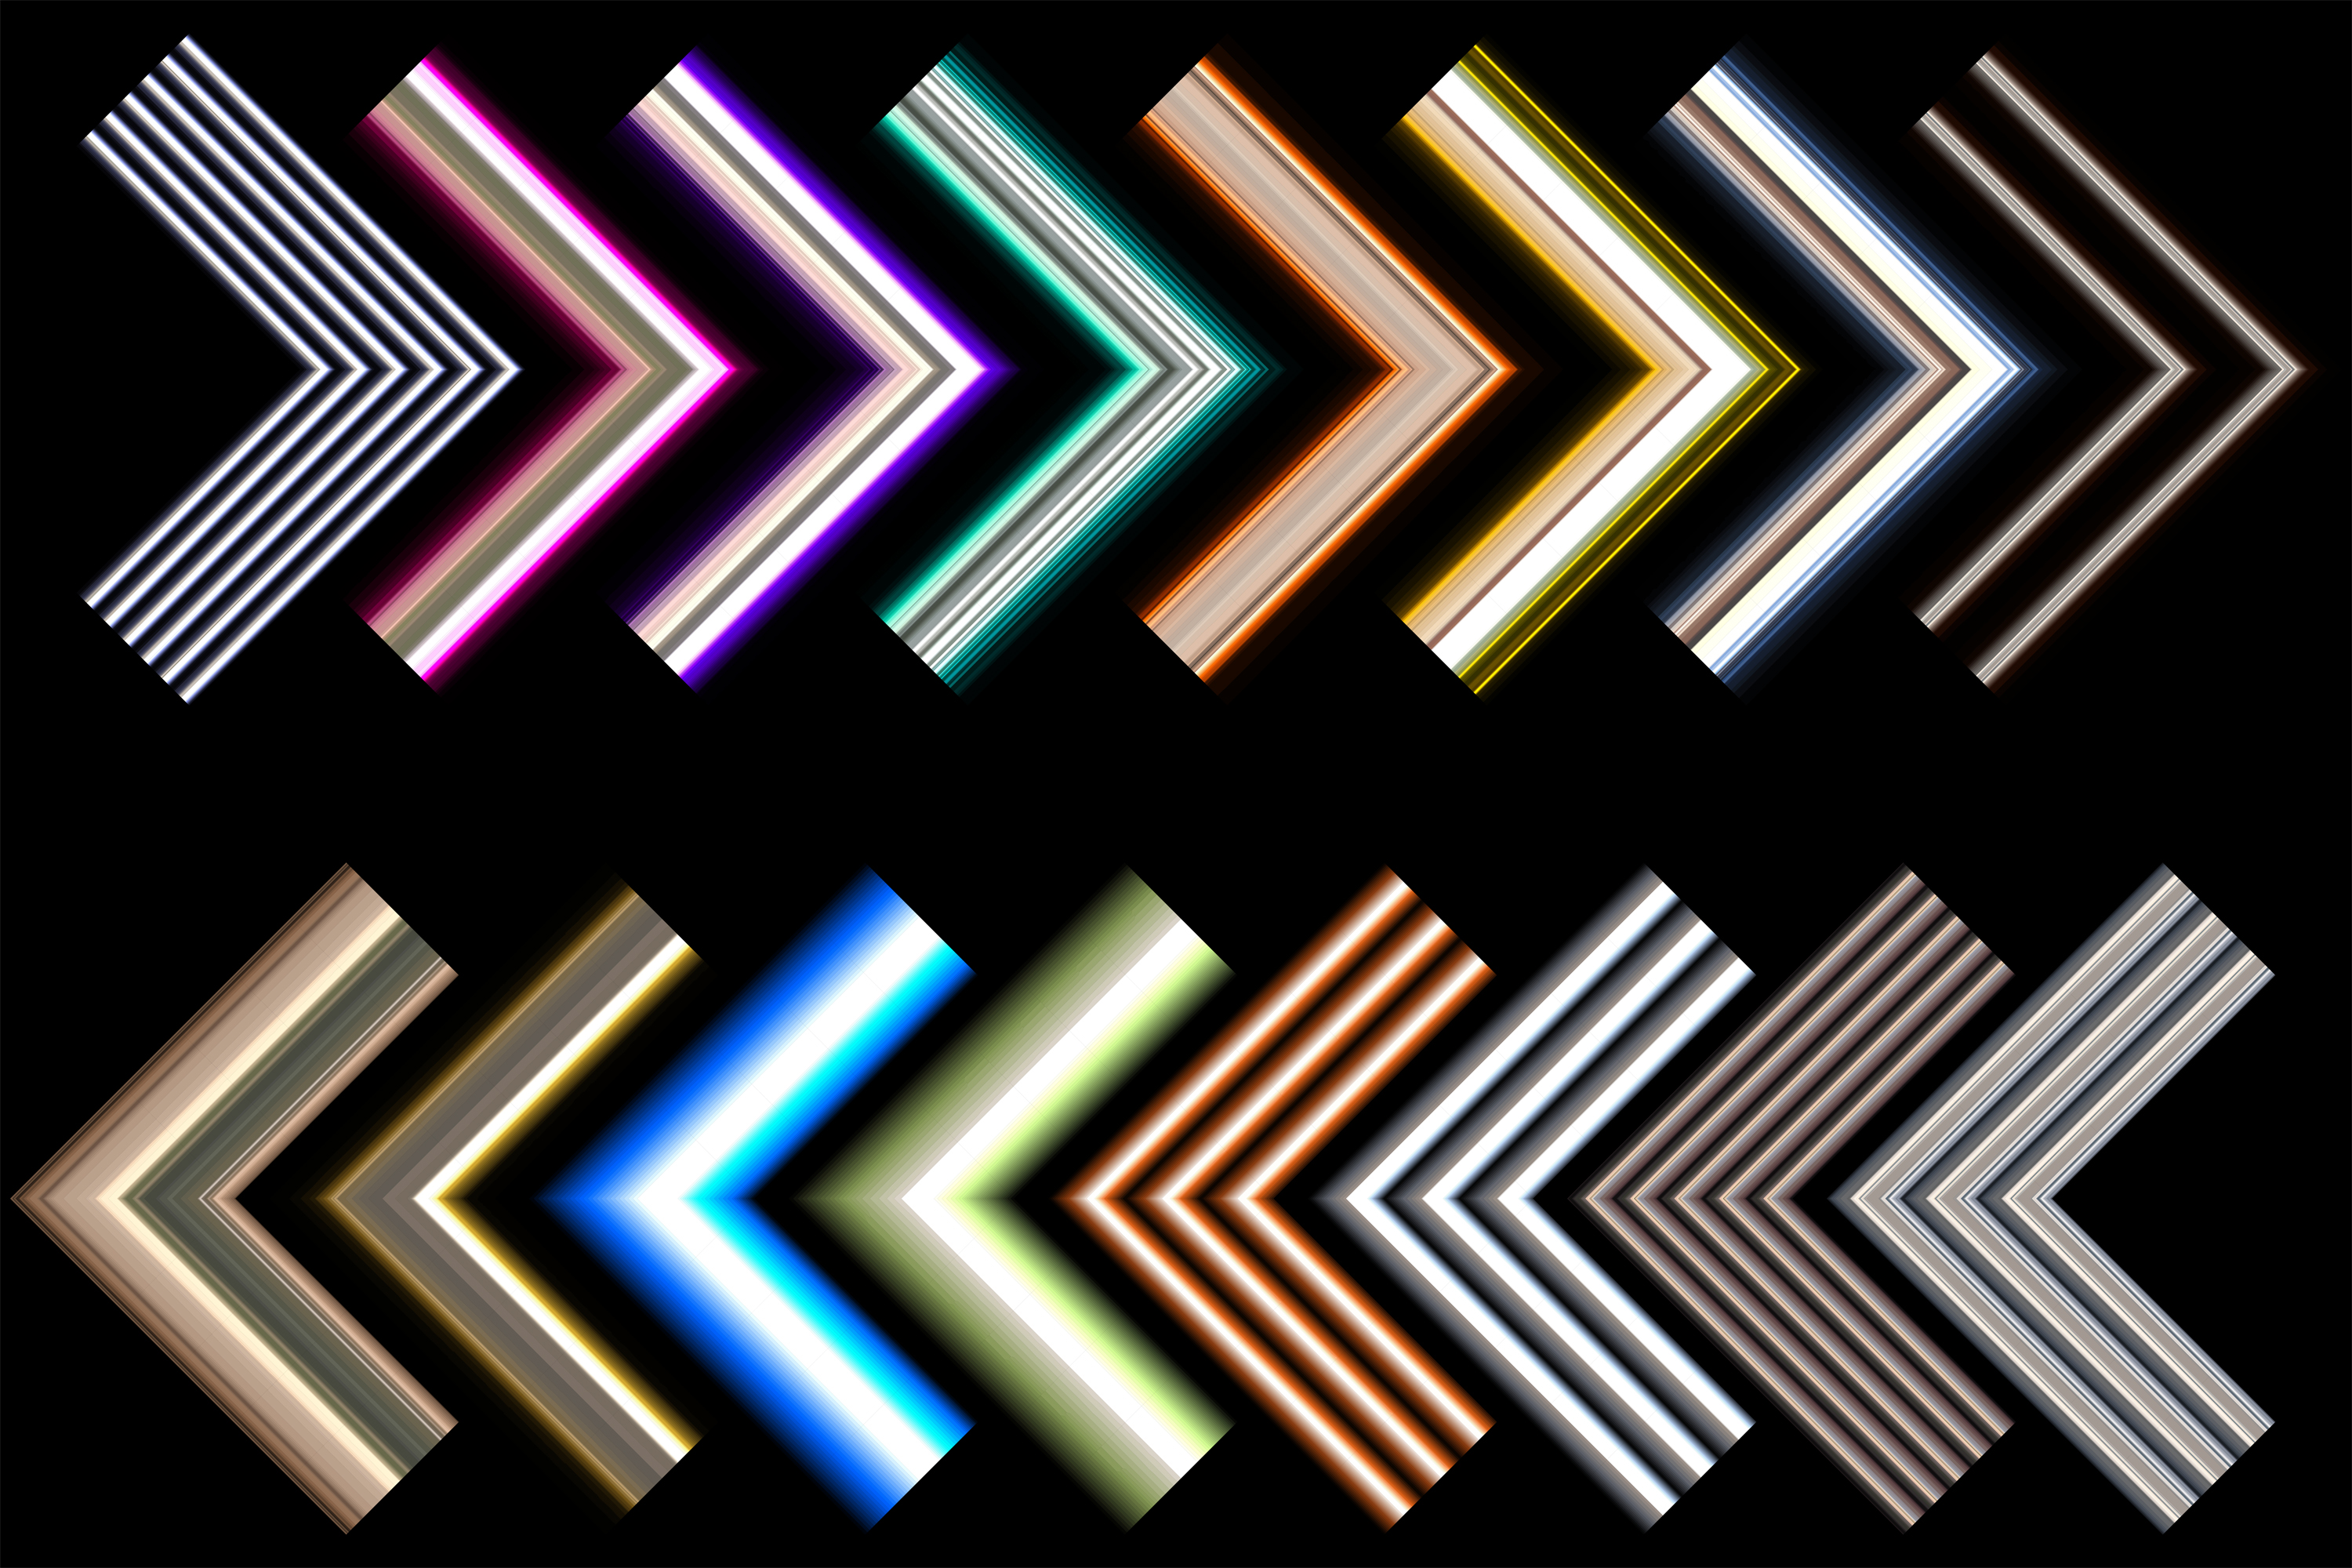 16 Polished Metal Pipe AI Pattern Brushes example image 2